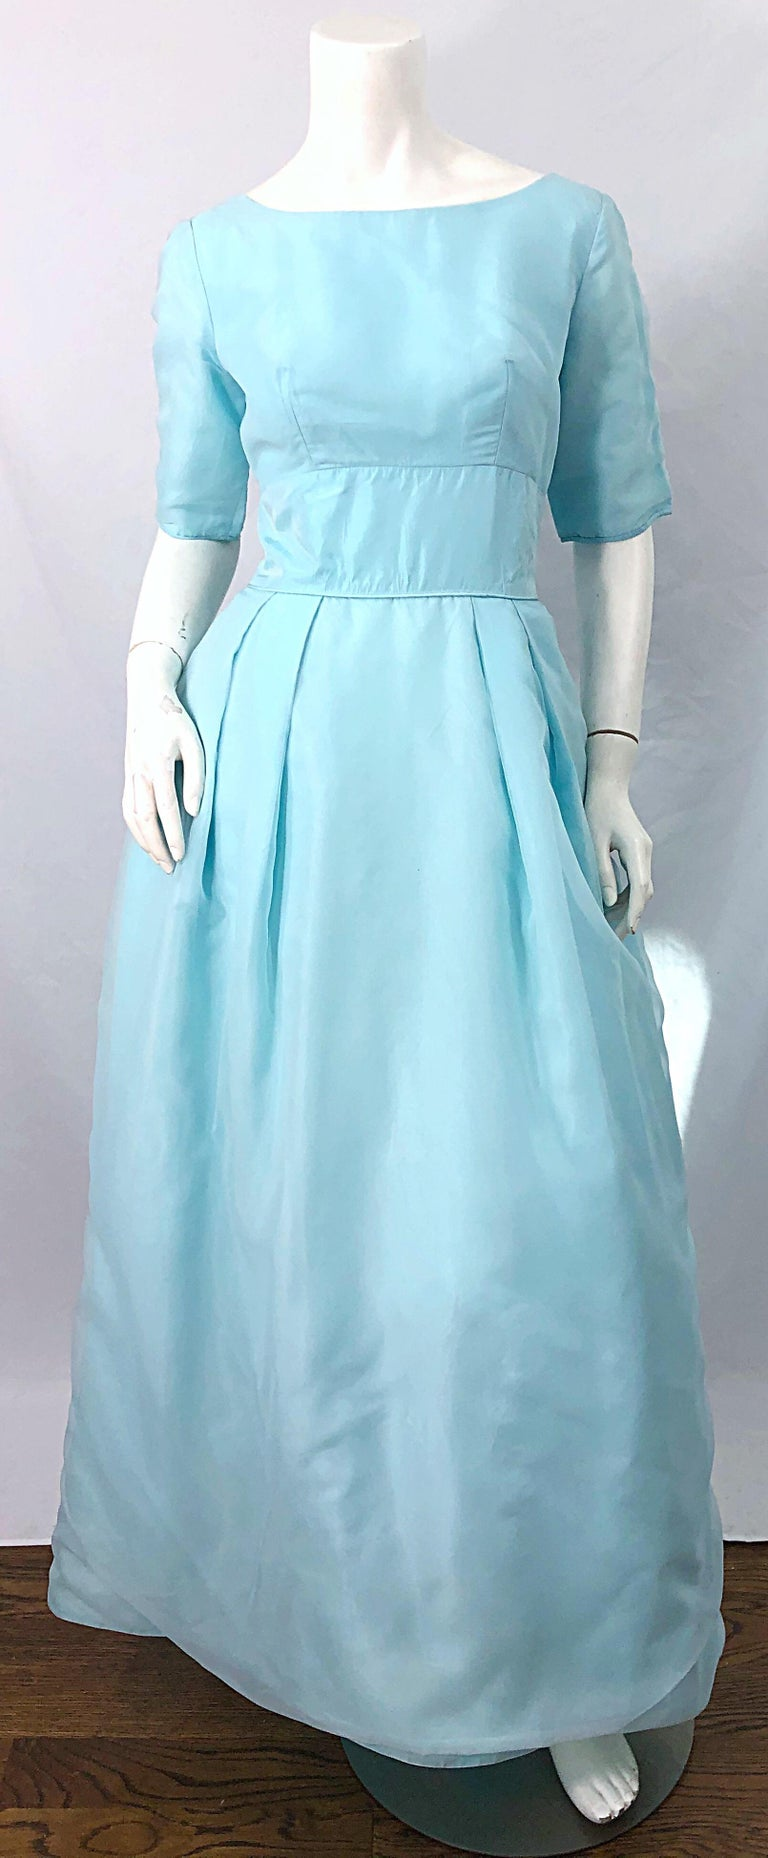 Have your Cinderella moment in this beautiful 1950s light blue silk chiffon and taffeta evening gown dress ! Features 3/4 sleeves with a tailored bodice and full skirt. Skirt has attached crinoline to add volume to the skirt. Hidden metal zipper up